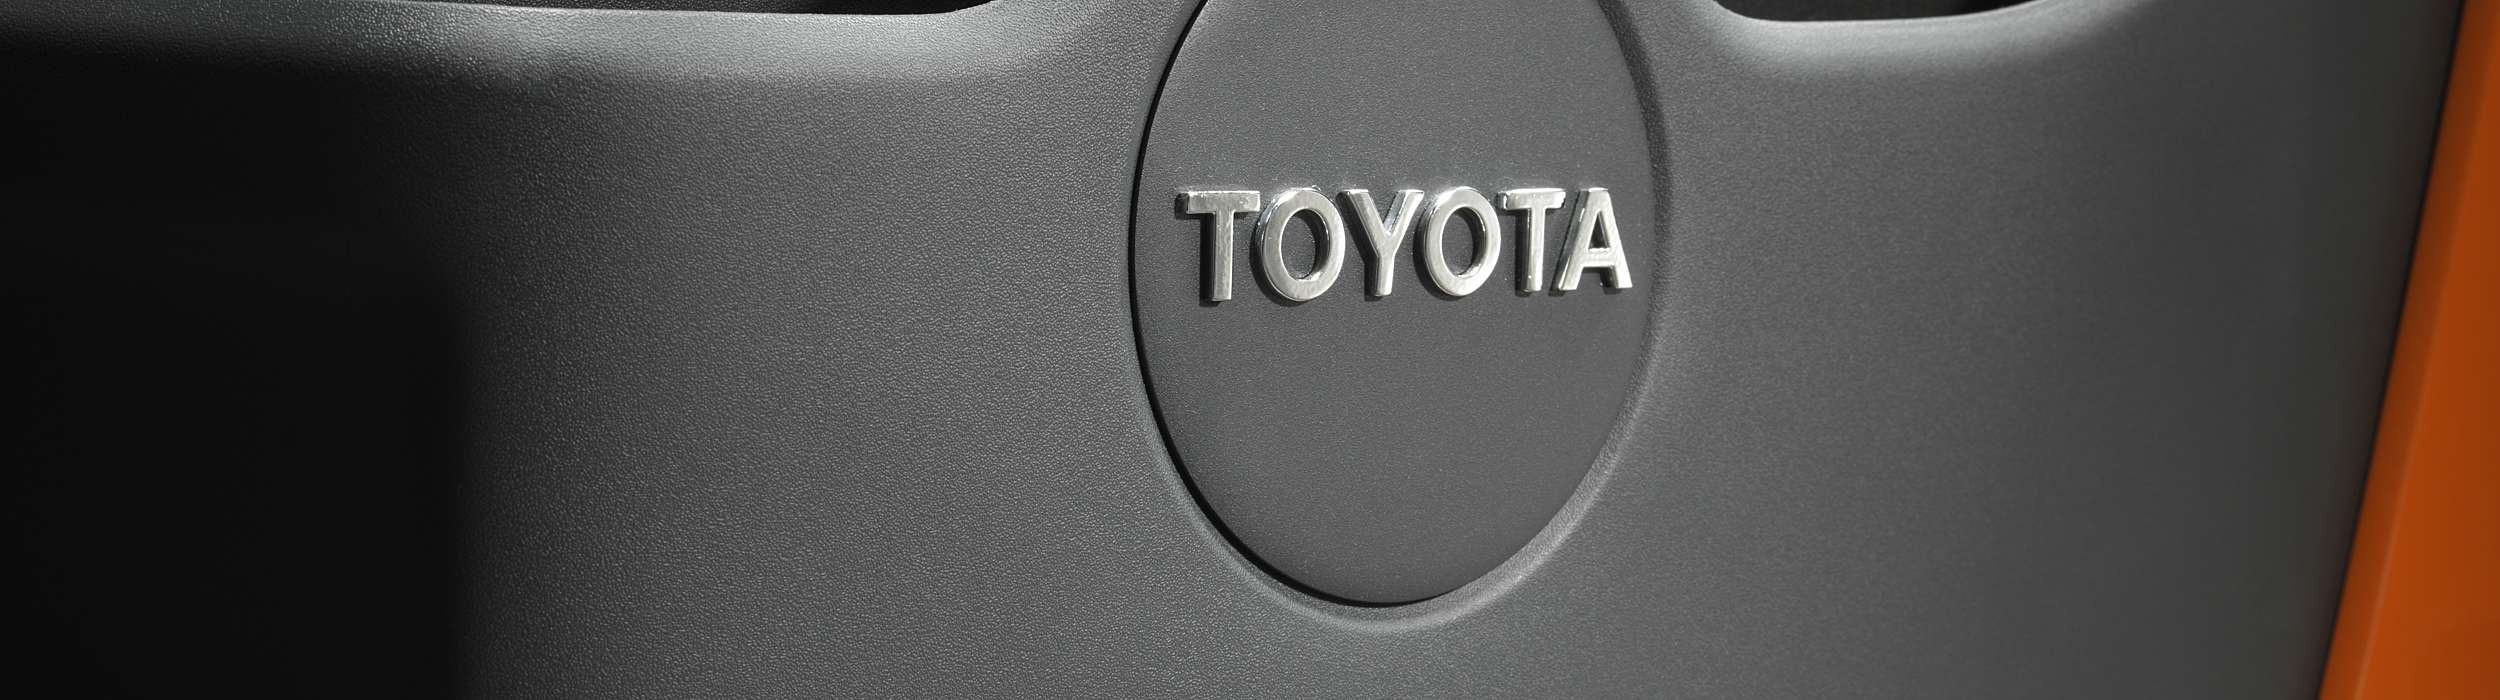 Close up on Toyota logo